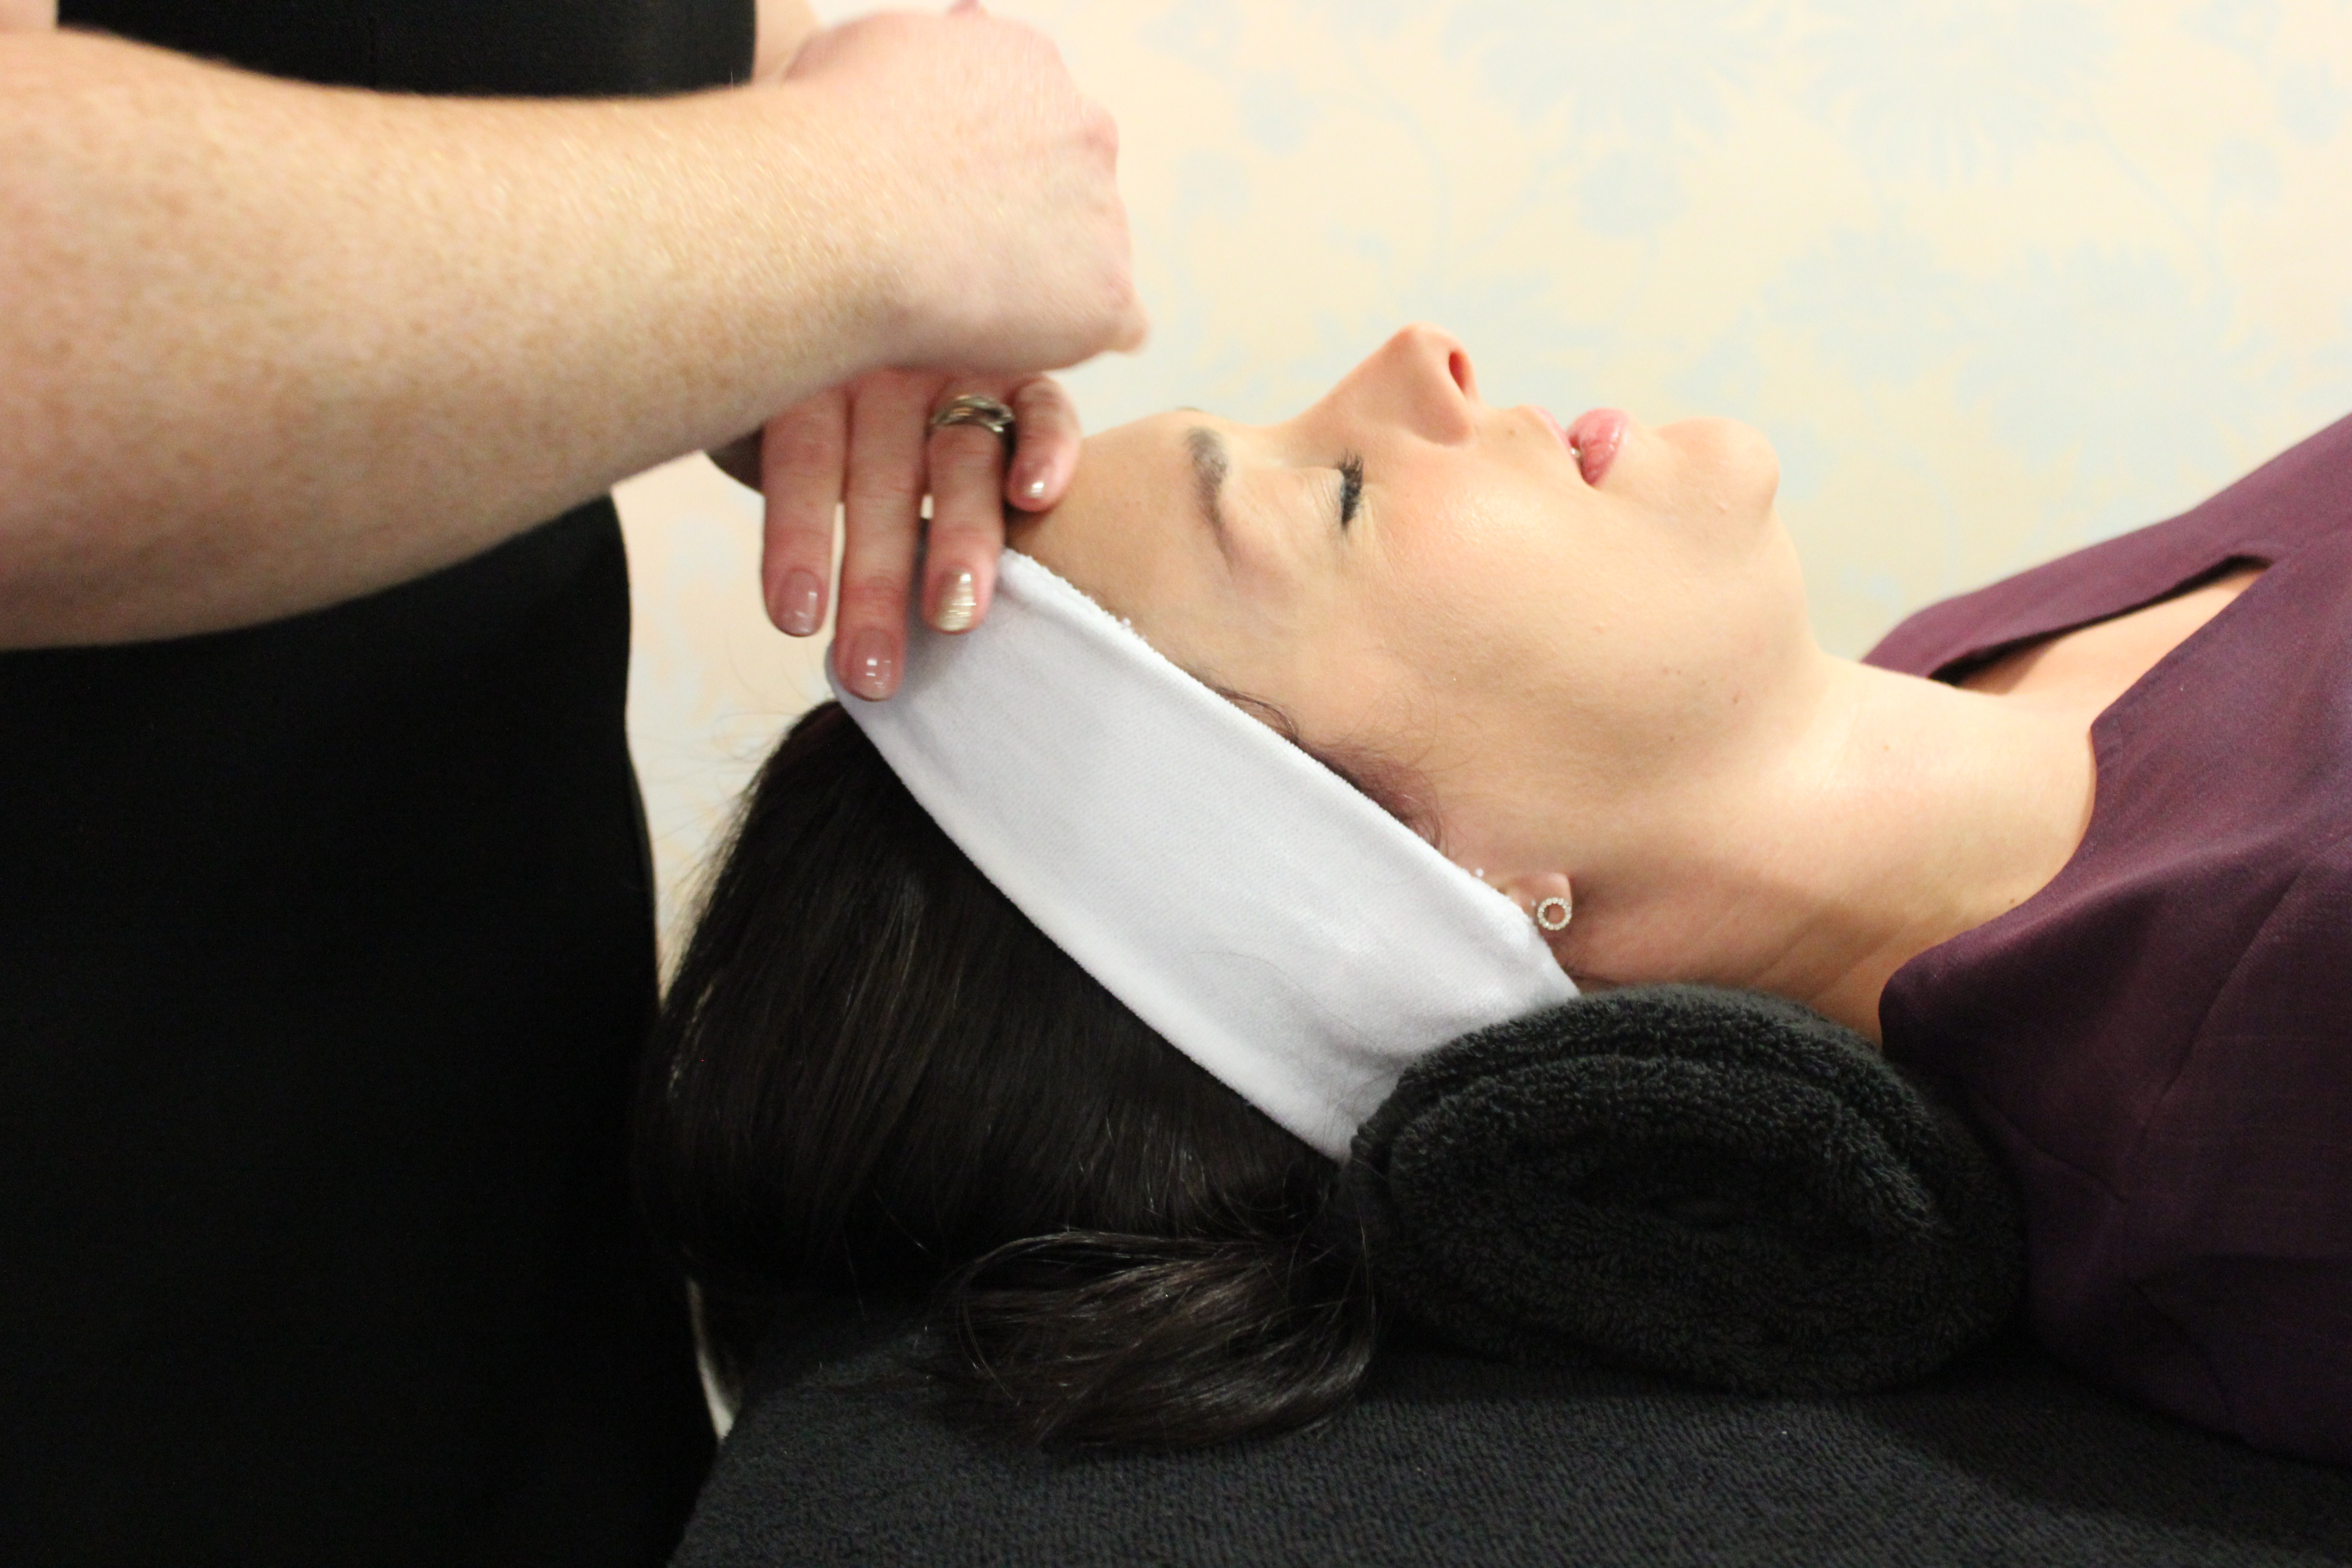 Image of a woman receiving a facial treatment